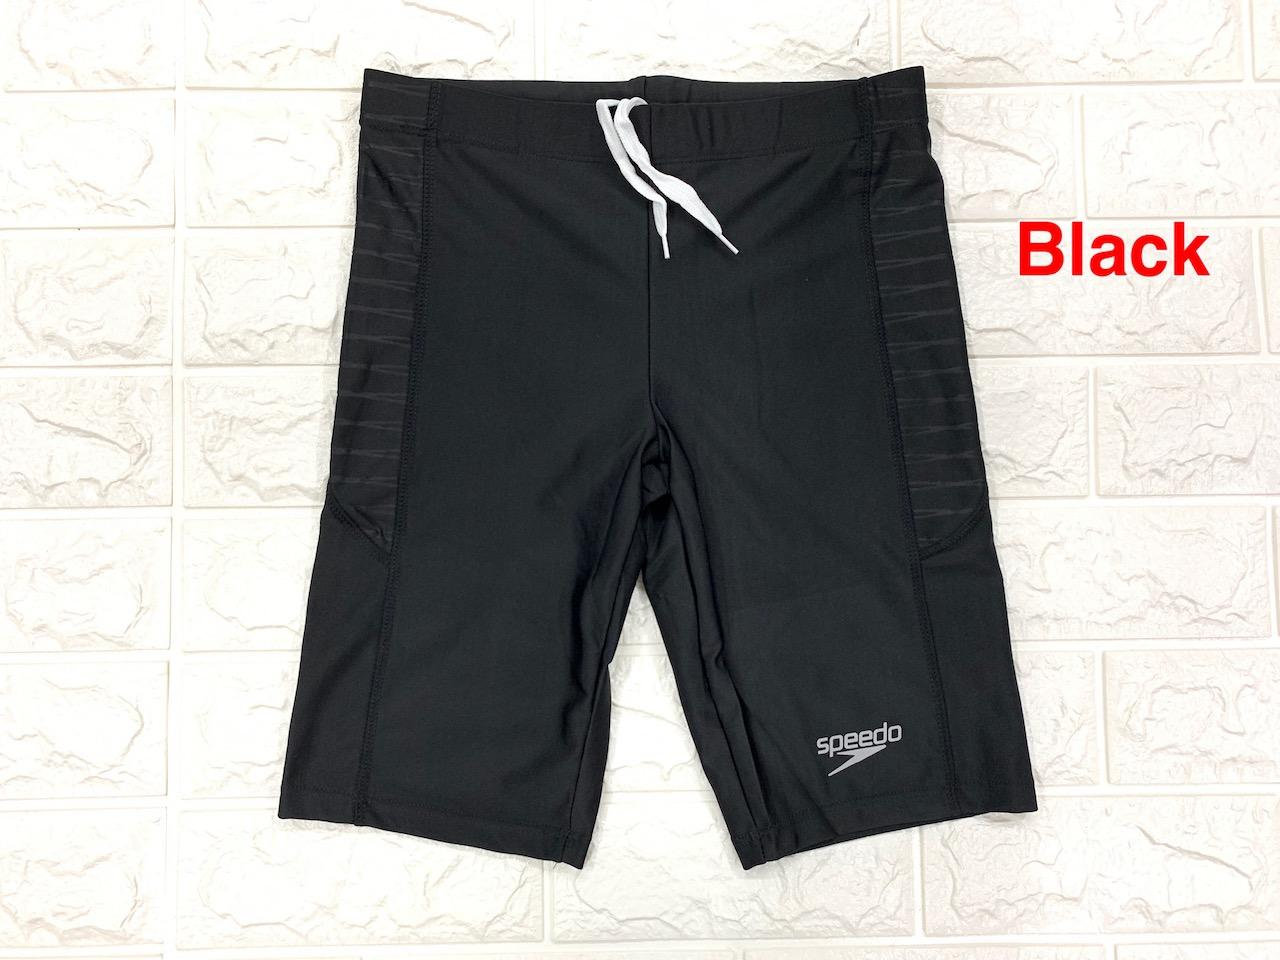 8638d6e5e8b6b Swimming Trunks for sale - Mens Sports Trunks online brands, prices ...